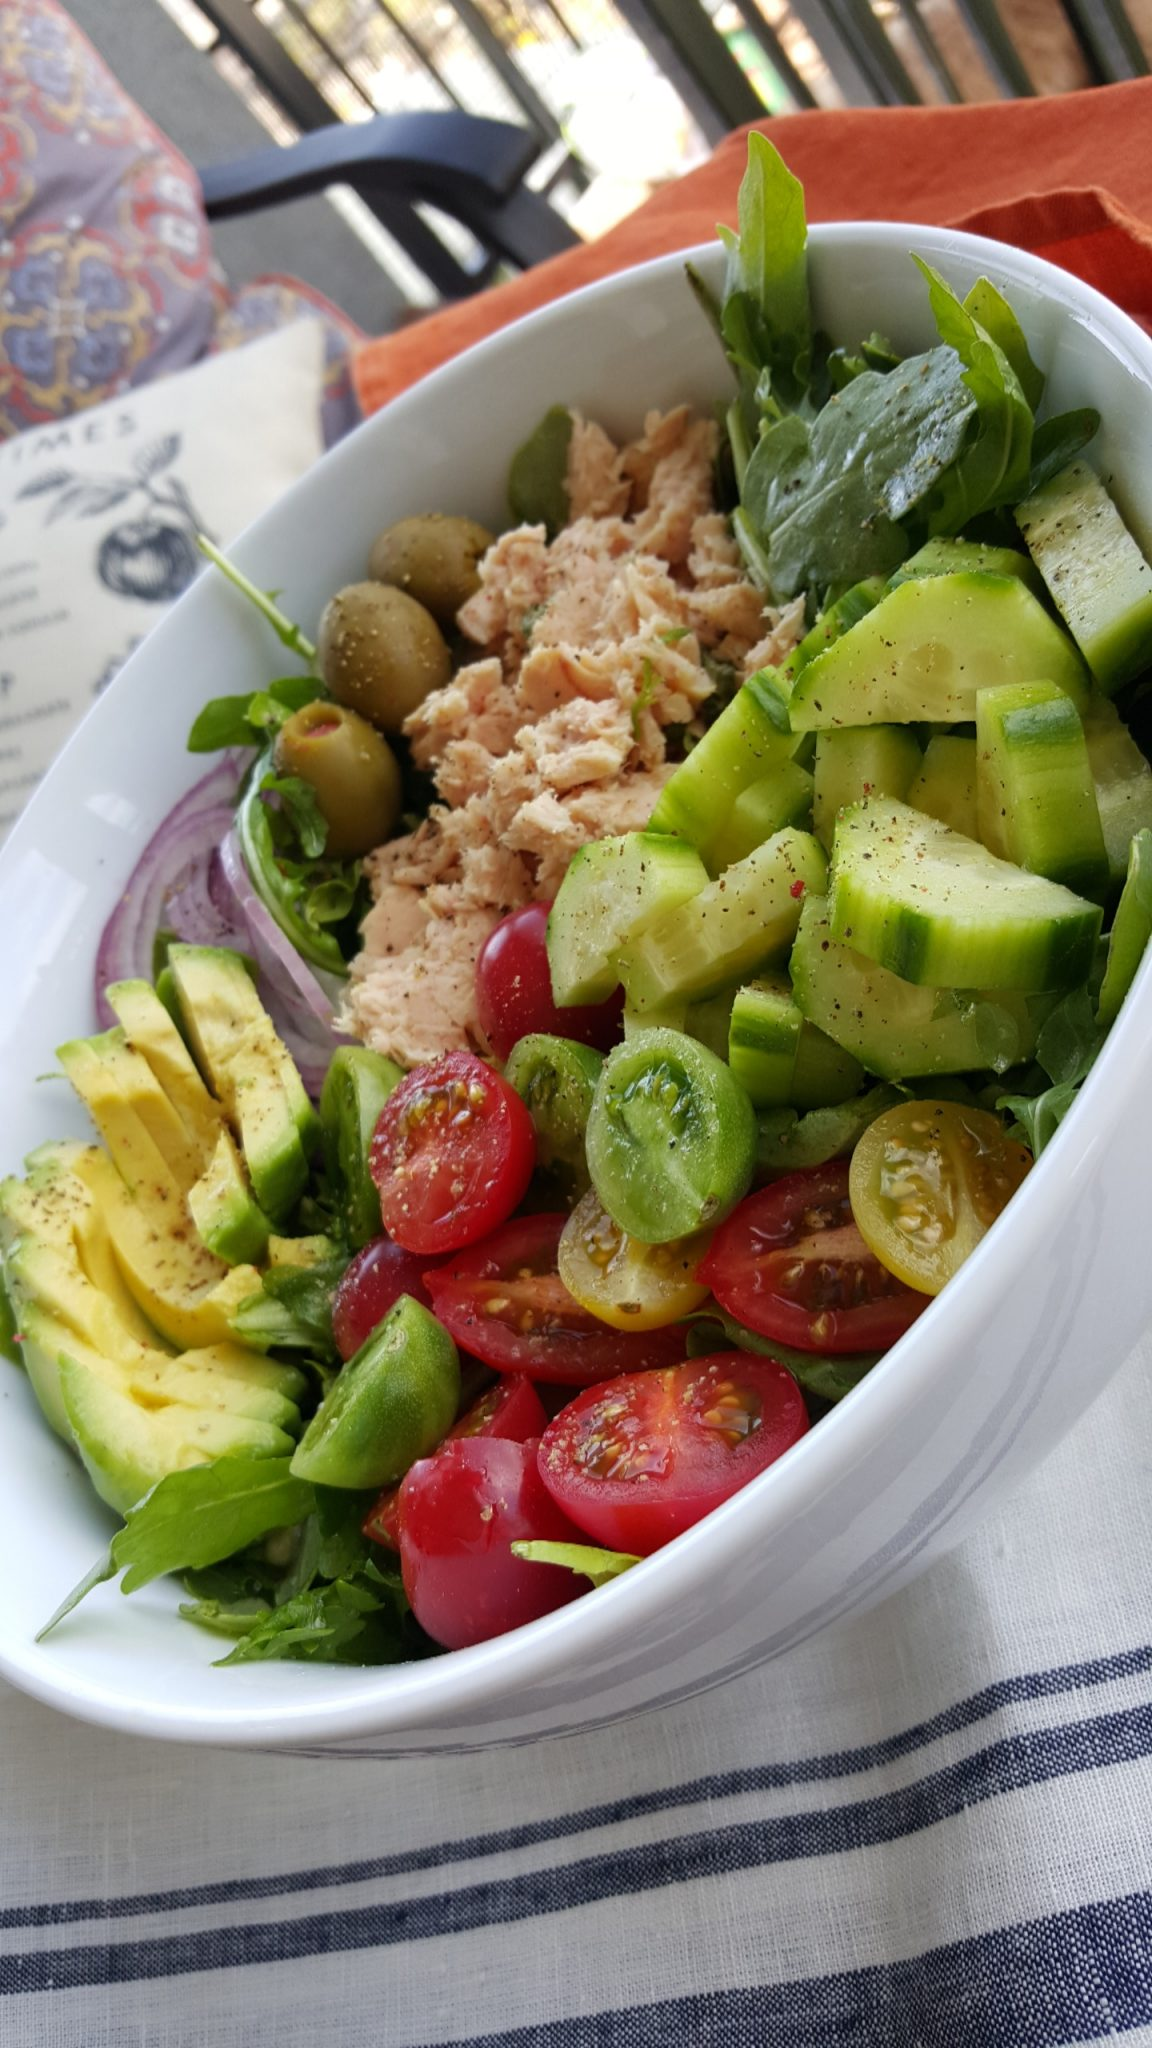 Bowl of Healthy Clean Food Salad Lunch